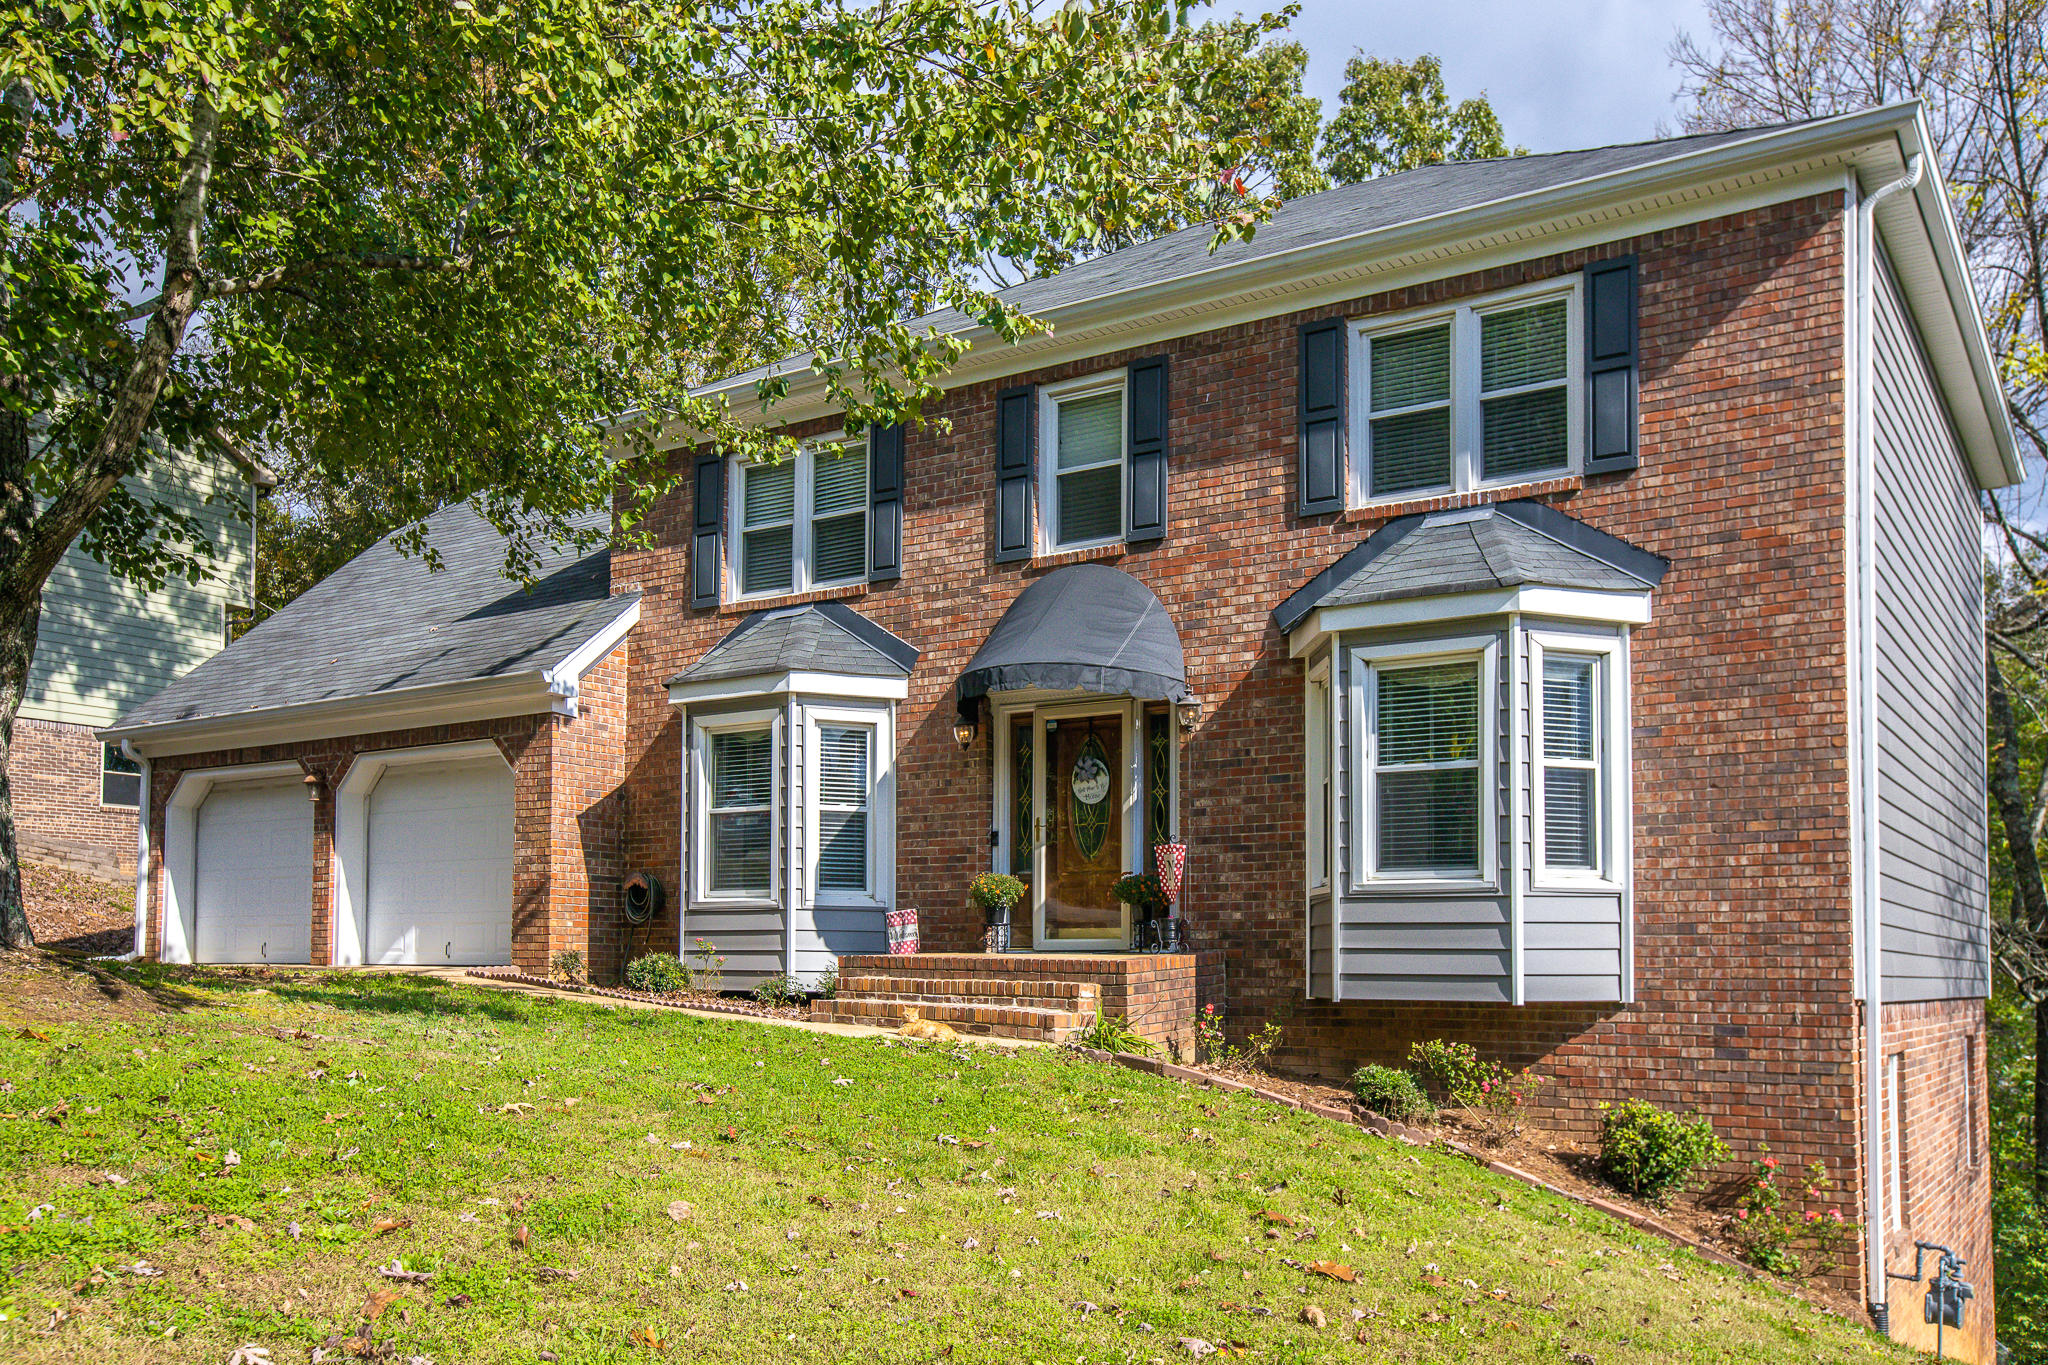 Details for 1713 Sea Gull, Hixson, TN 37343